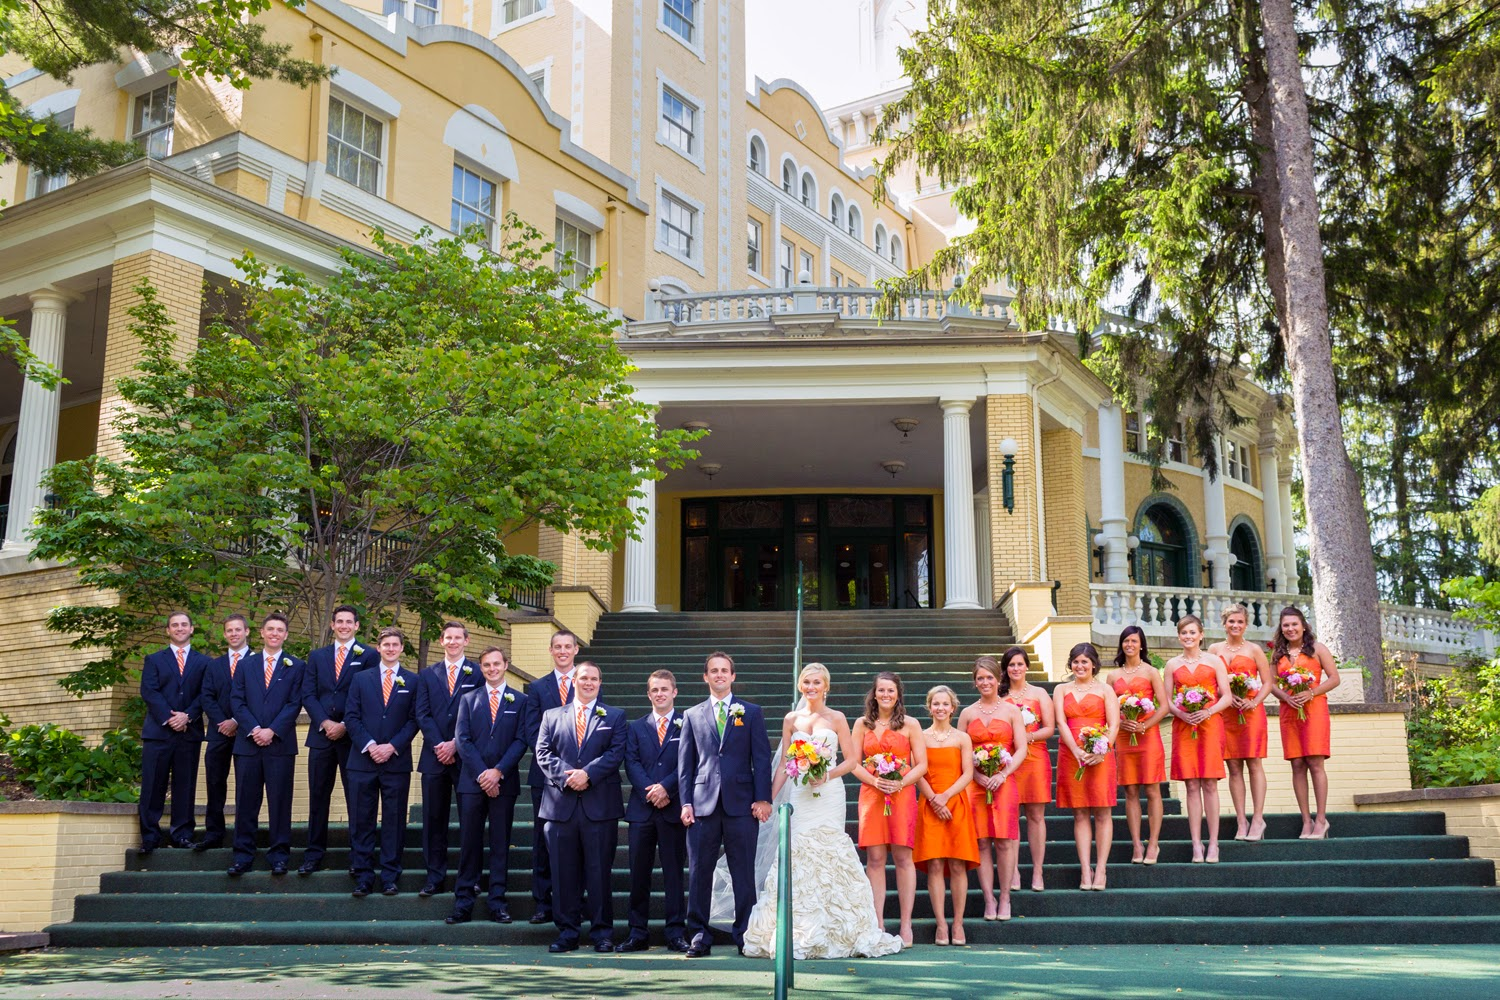 Orange and Gold wedding party